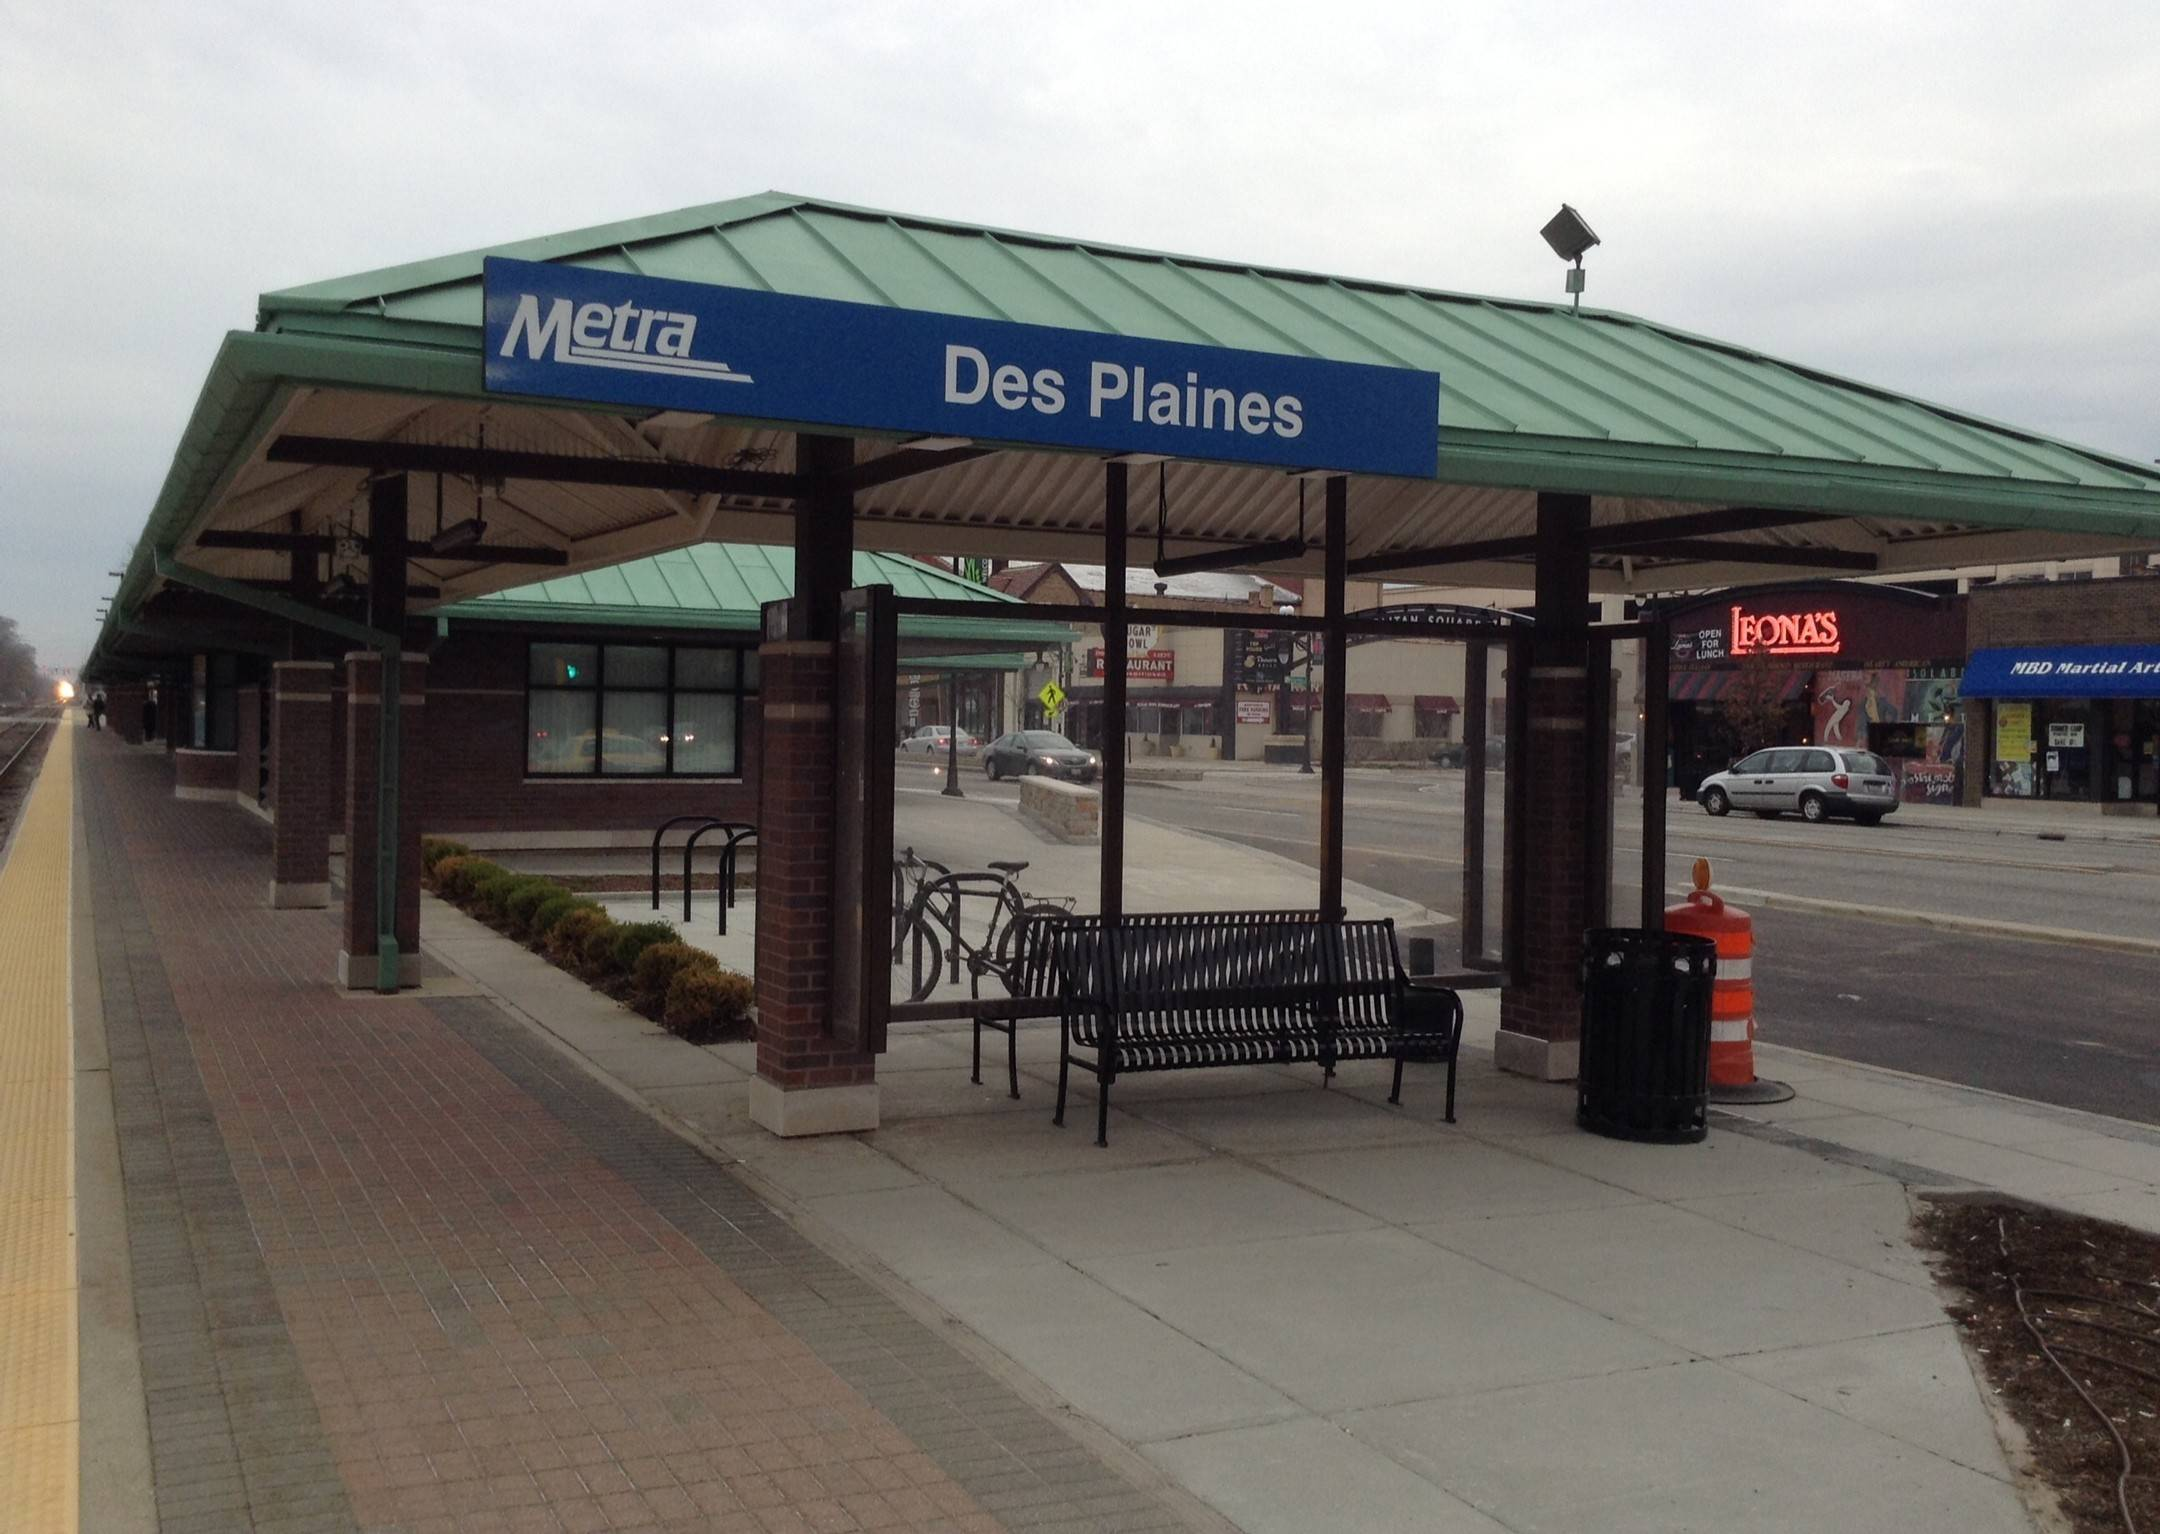 The refurbished Des Plaines Metra station building will soon be home to a new coffee shop, The Local Coffee Tea & Sweets. The shop and city leaders reached a five-year agreement this month.